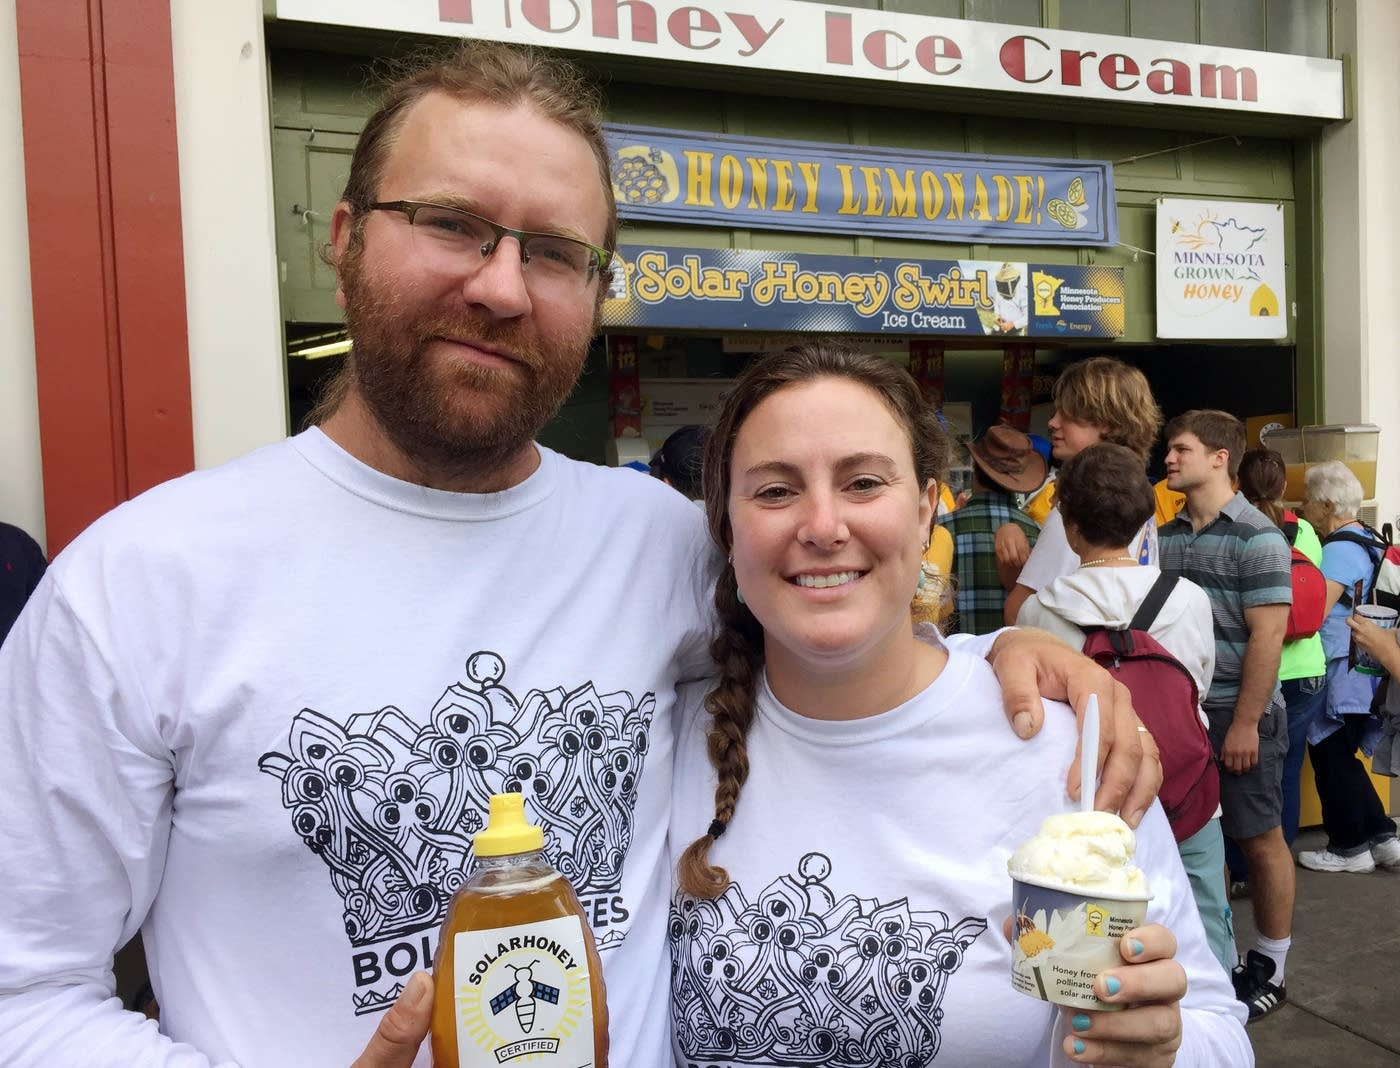 Notes from the field: Hanging with foodies at the fair